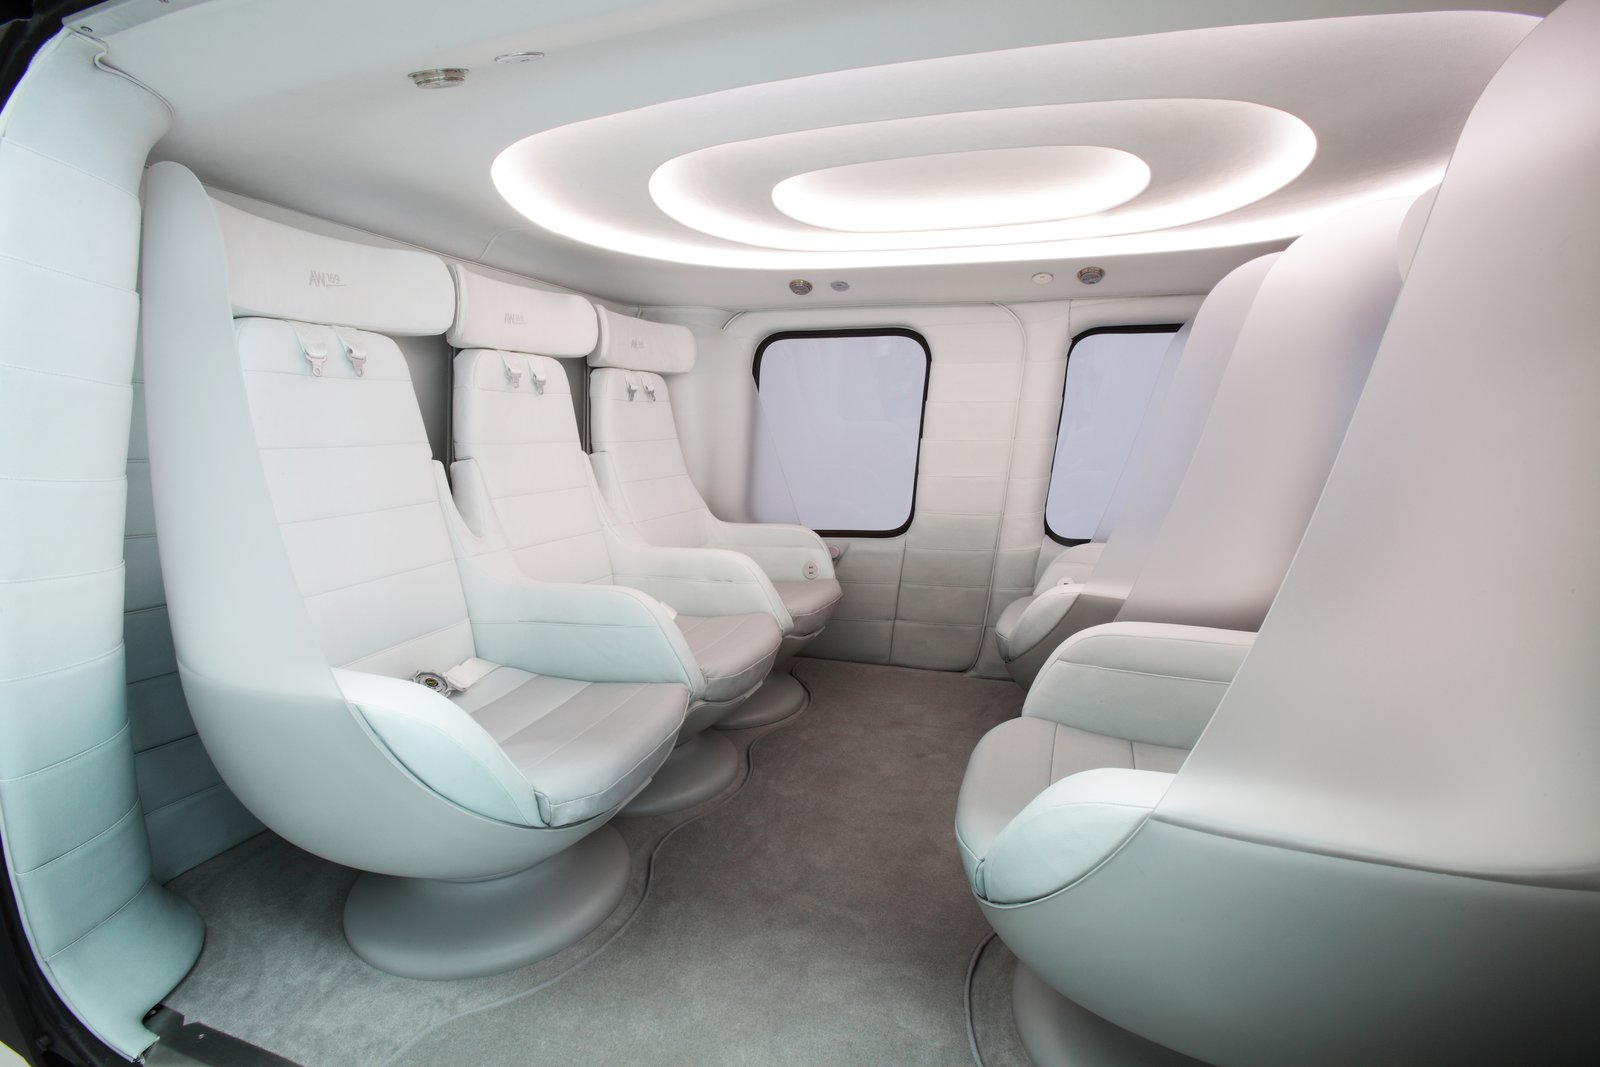 "This VIP interior for the AW169 helicopter can accommodate up to five passengers in cocoon-like leather seats. The cabin is done up in a neutral palette, placing emphasis on the passing scenery.  Search ""김포출장마사지-출장안마-출장-출장서비스 김포콜걸 출장샵 주소ㅋr톡BC388 주소[sannhu222,vip] 김포 출장여대생 만남 출장만남 업소 타이마사지 출장샵추천 업소  김포출장샵 출장서비스 출장업소"" from The Ultimate Ride: VIP Helicopter with Plush Interior"